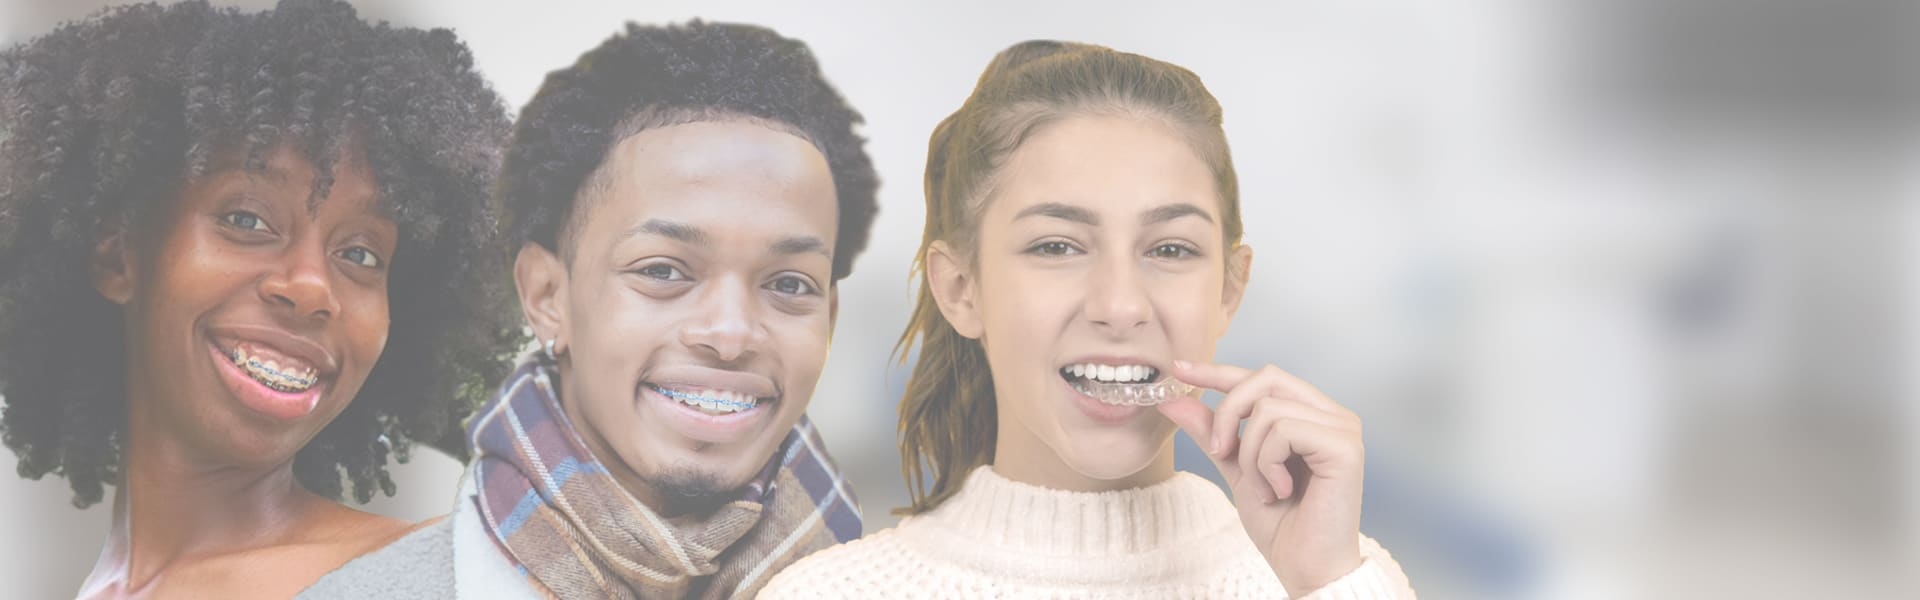 Pitt Meadows Dentist   Your Family Dentist - youth and adult invisalign